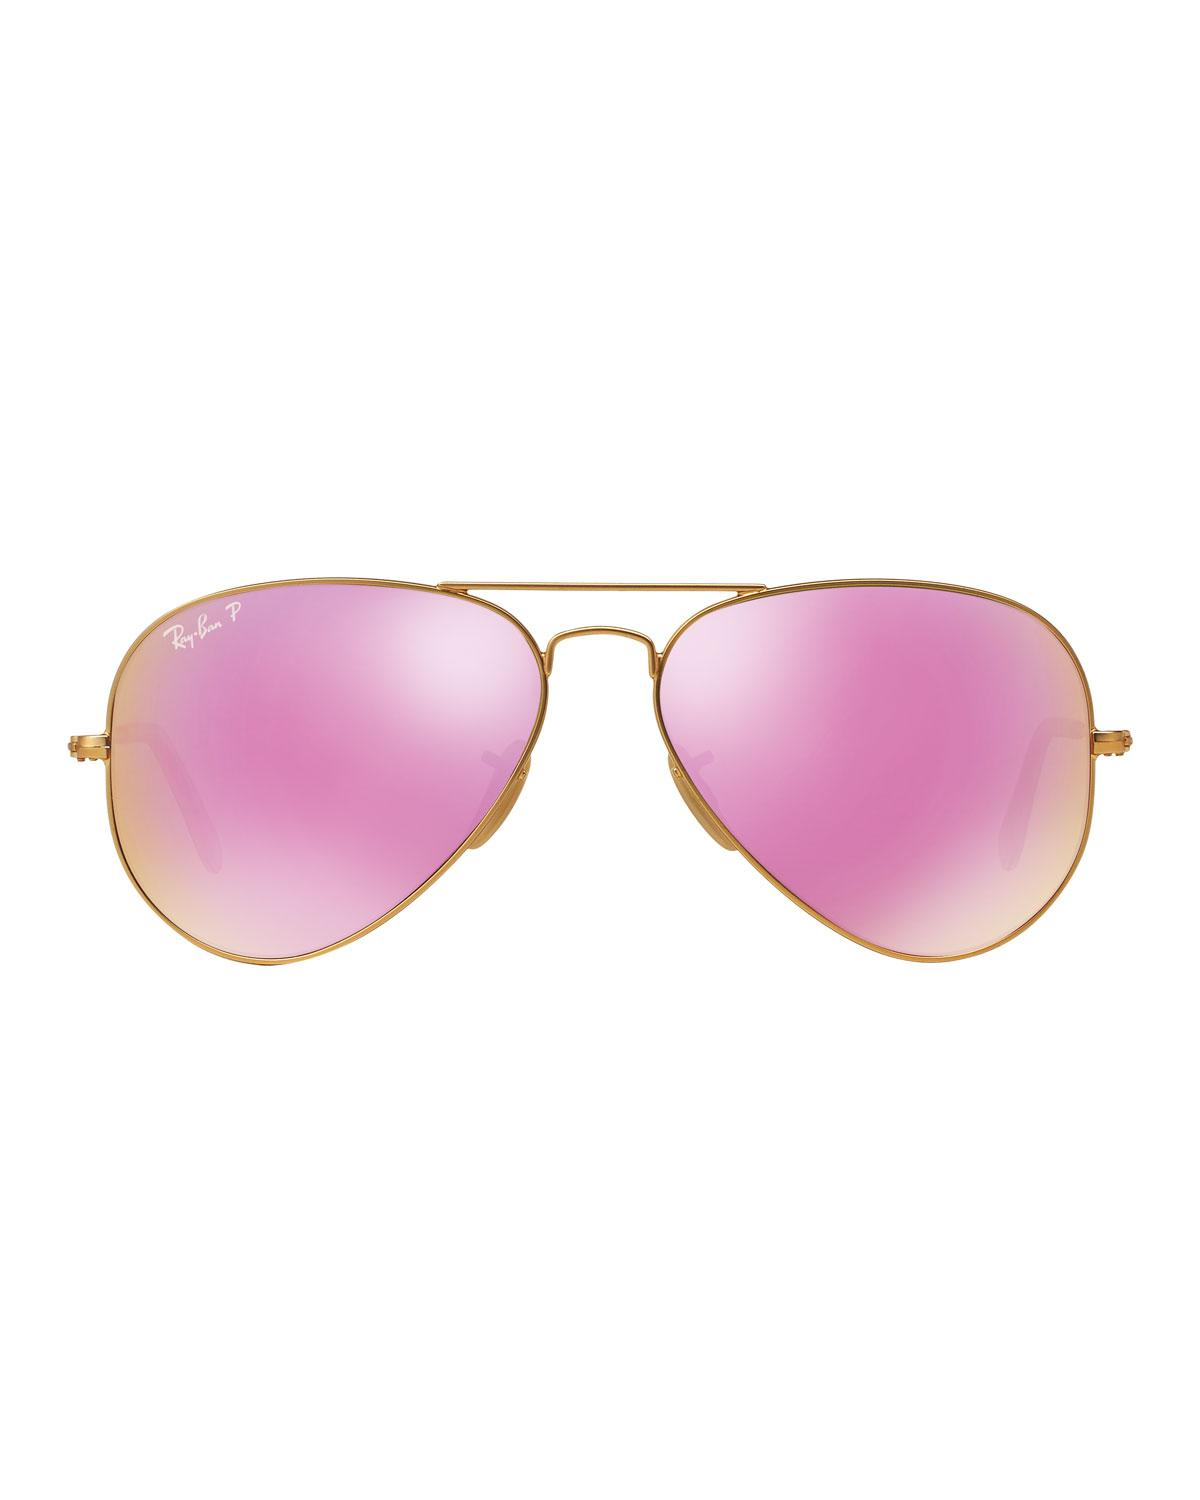 7c37184ca03 Lyst - Ray-Ban Mirrored Polarized Metal Aviator Sunglasses in Pink